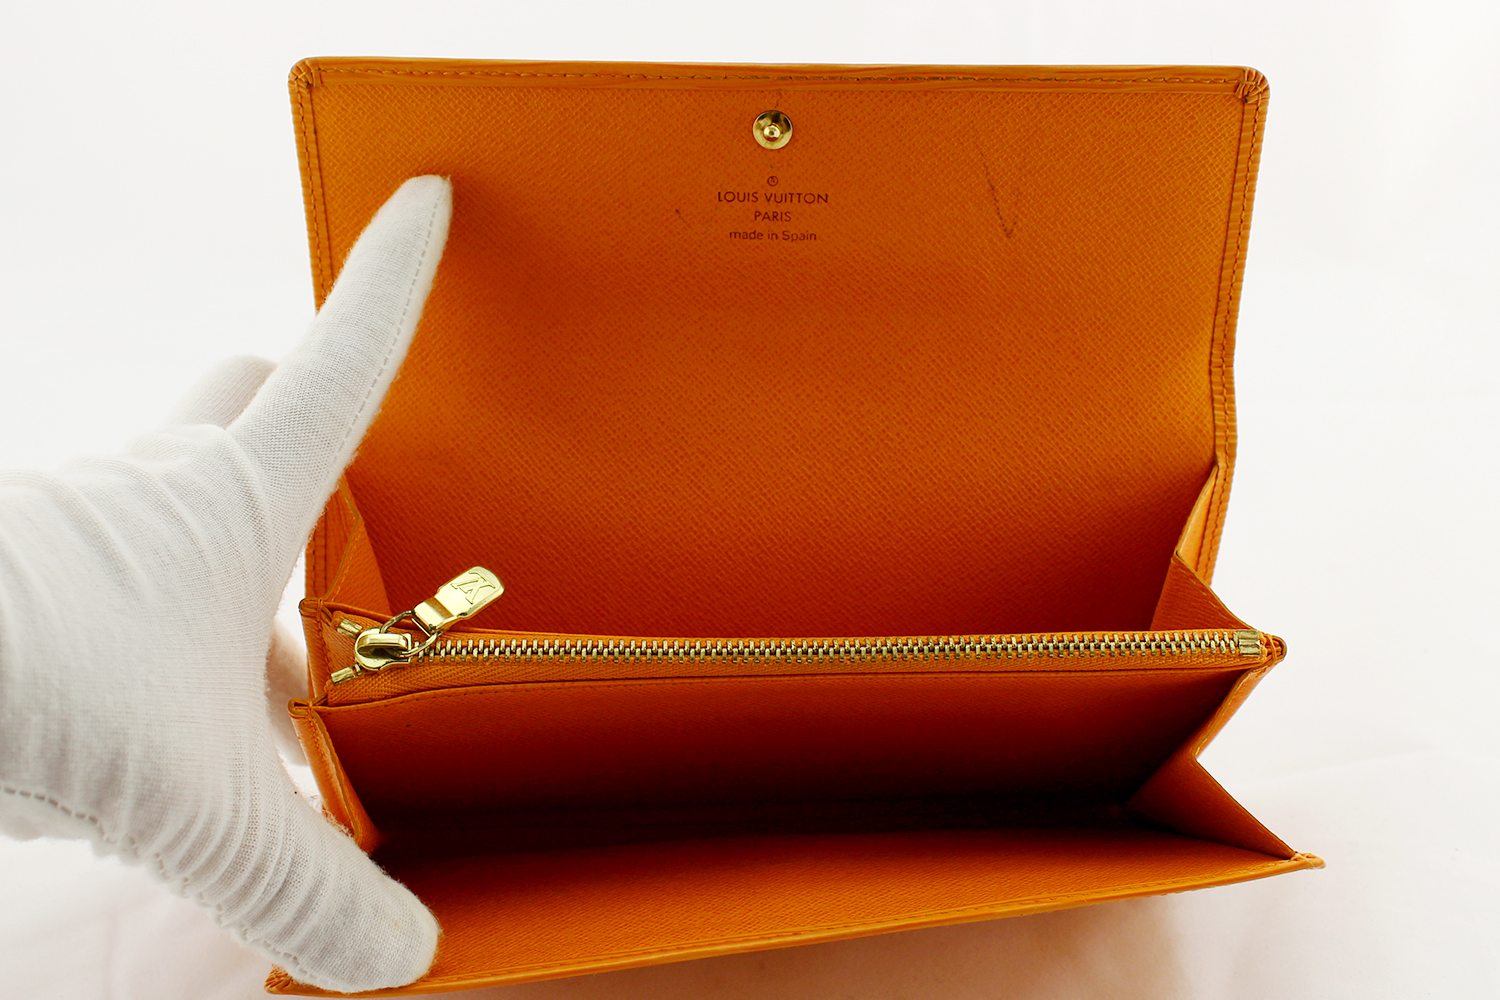 Portefeuille Louis Vuitton Sarah Authentique d'occasion en cuir épi couleur orange